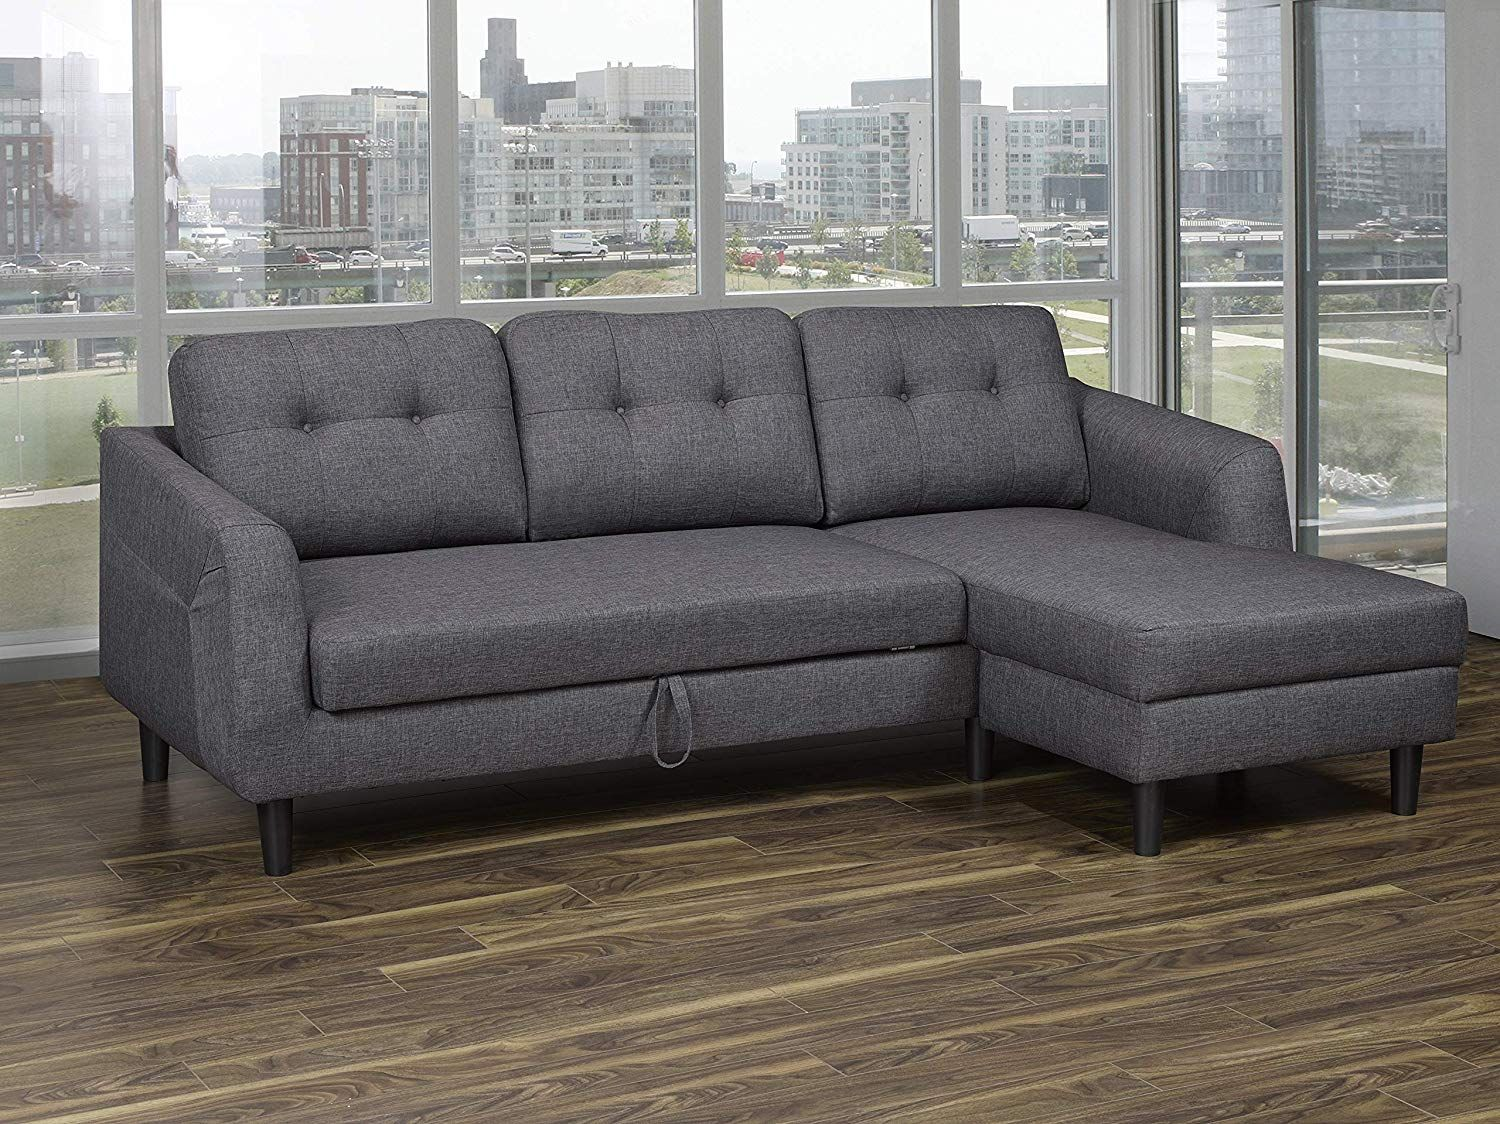 This Sectional Sofa Made With Linen Fabric In Dark Grey Color Can Work With Any Neutral Decor Theme Or Wonderfully Contrast A Dar In 2020 Modern Sofa Bed Sofa Sofa Bed